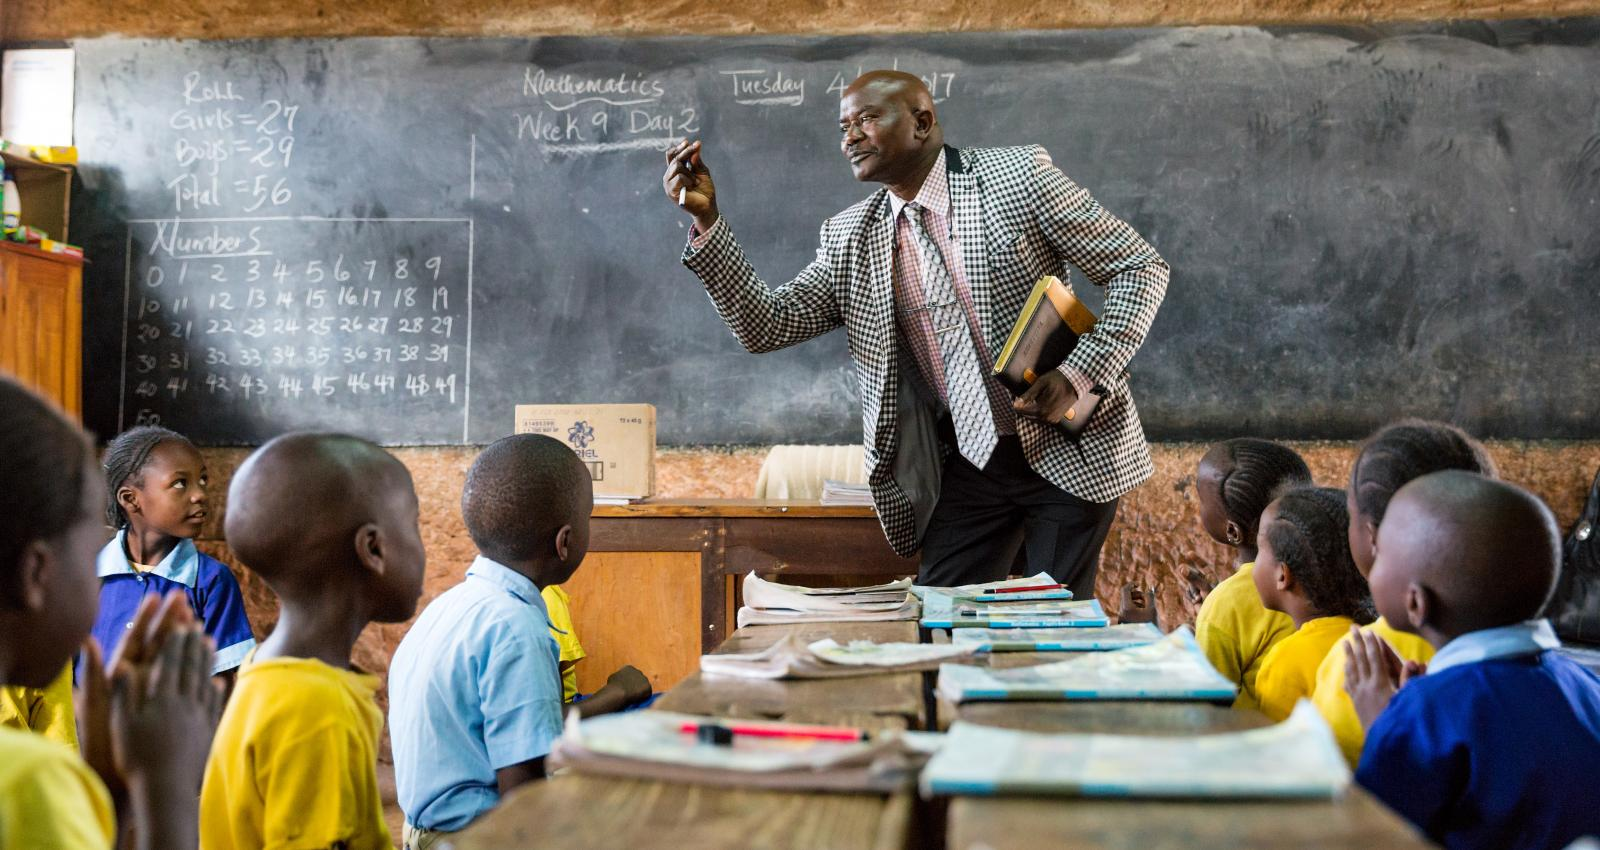 Pictured above: A teacher with his students in class Kenya, April 2017 Credit: GPE/Kelley Lynch